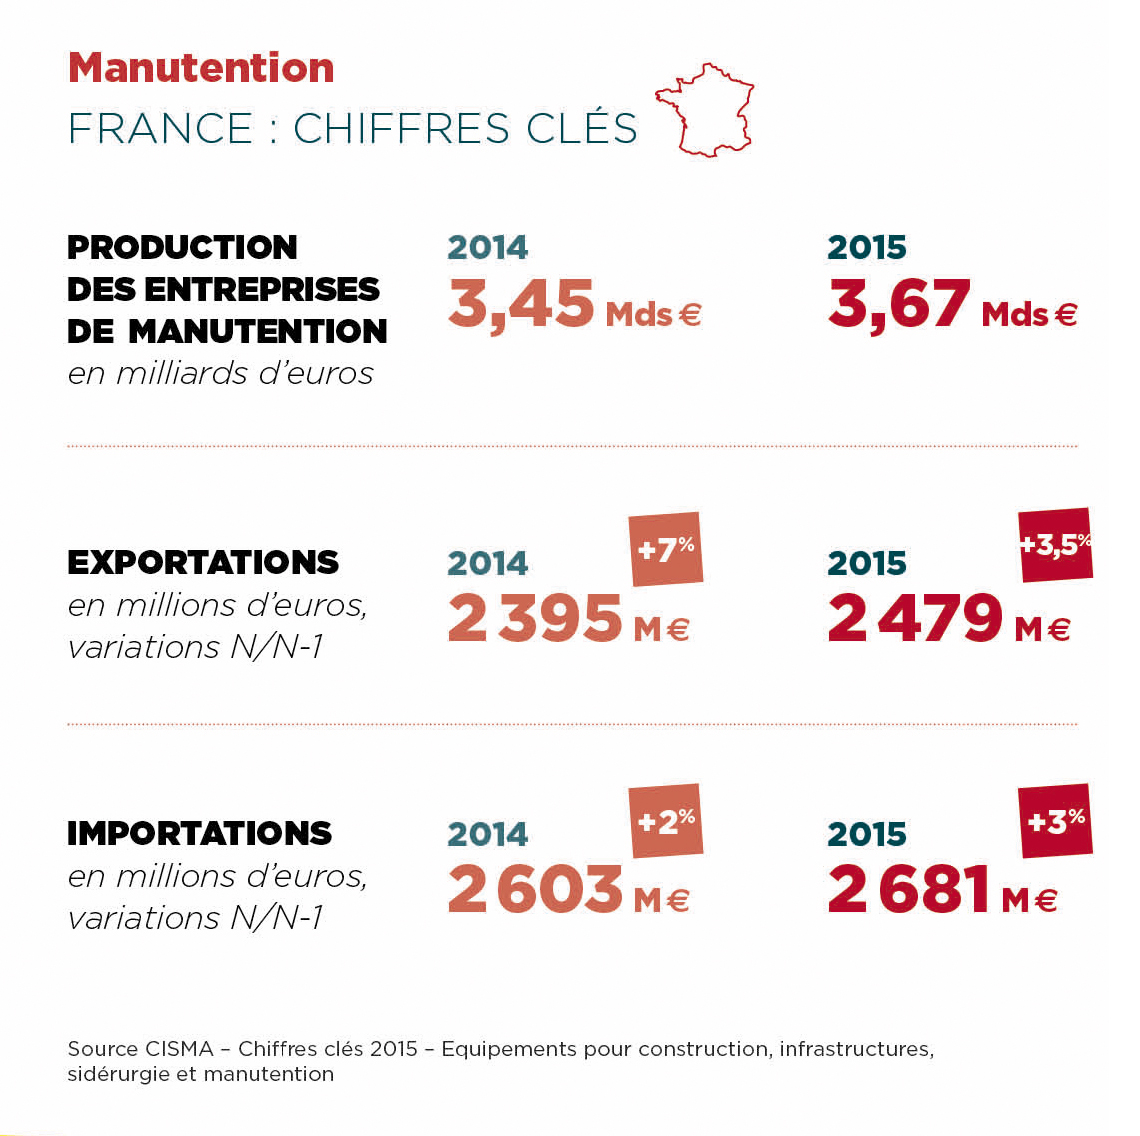 Manutention Chiffres clés France Levage Manutention & Transport Intermat Paris